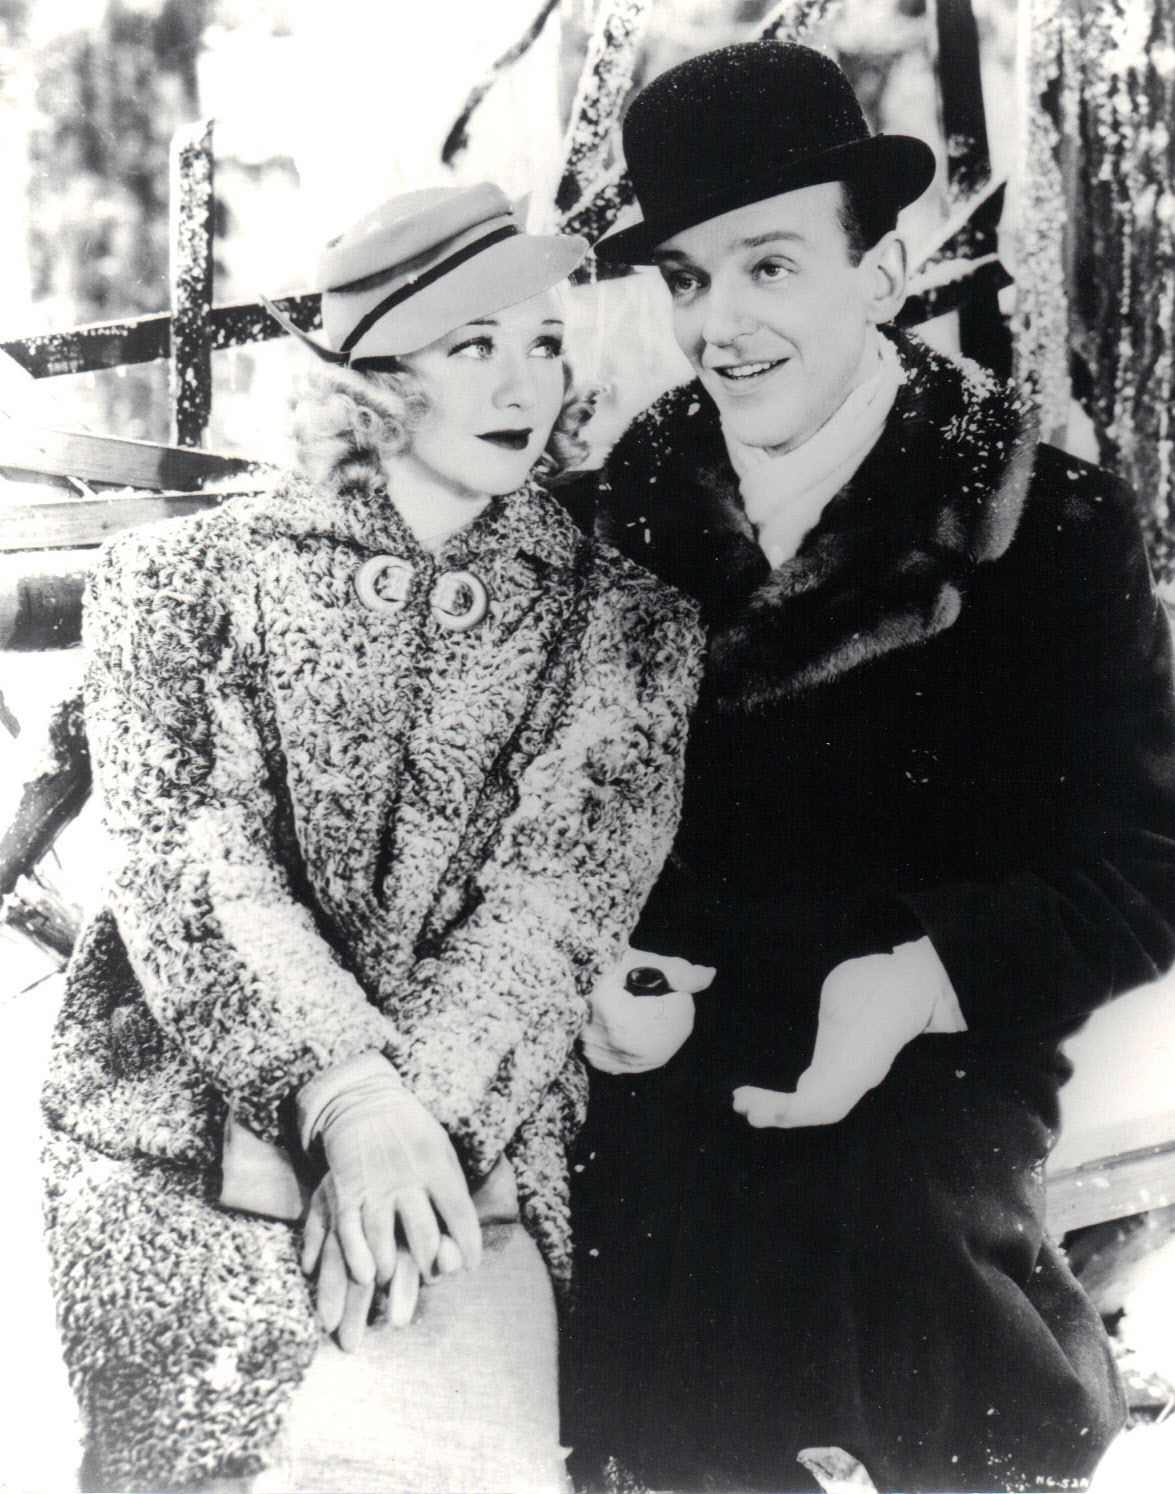 Ginger Rogers Swing Time 1936 This is a Fine Romance